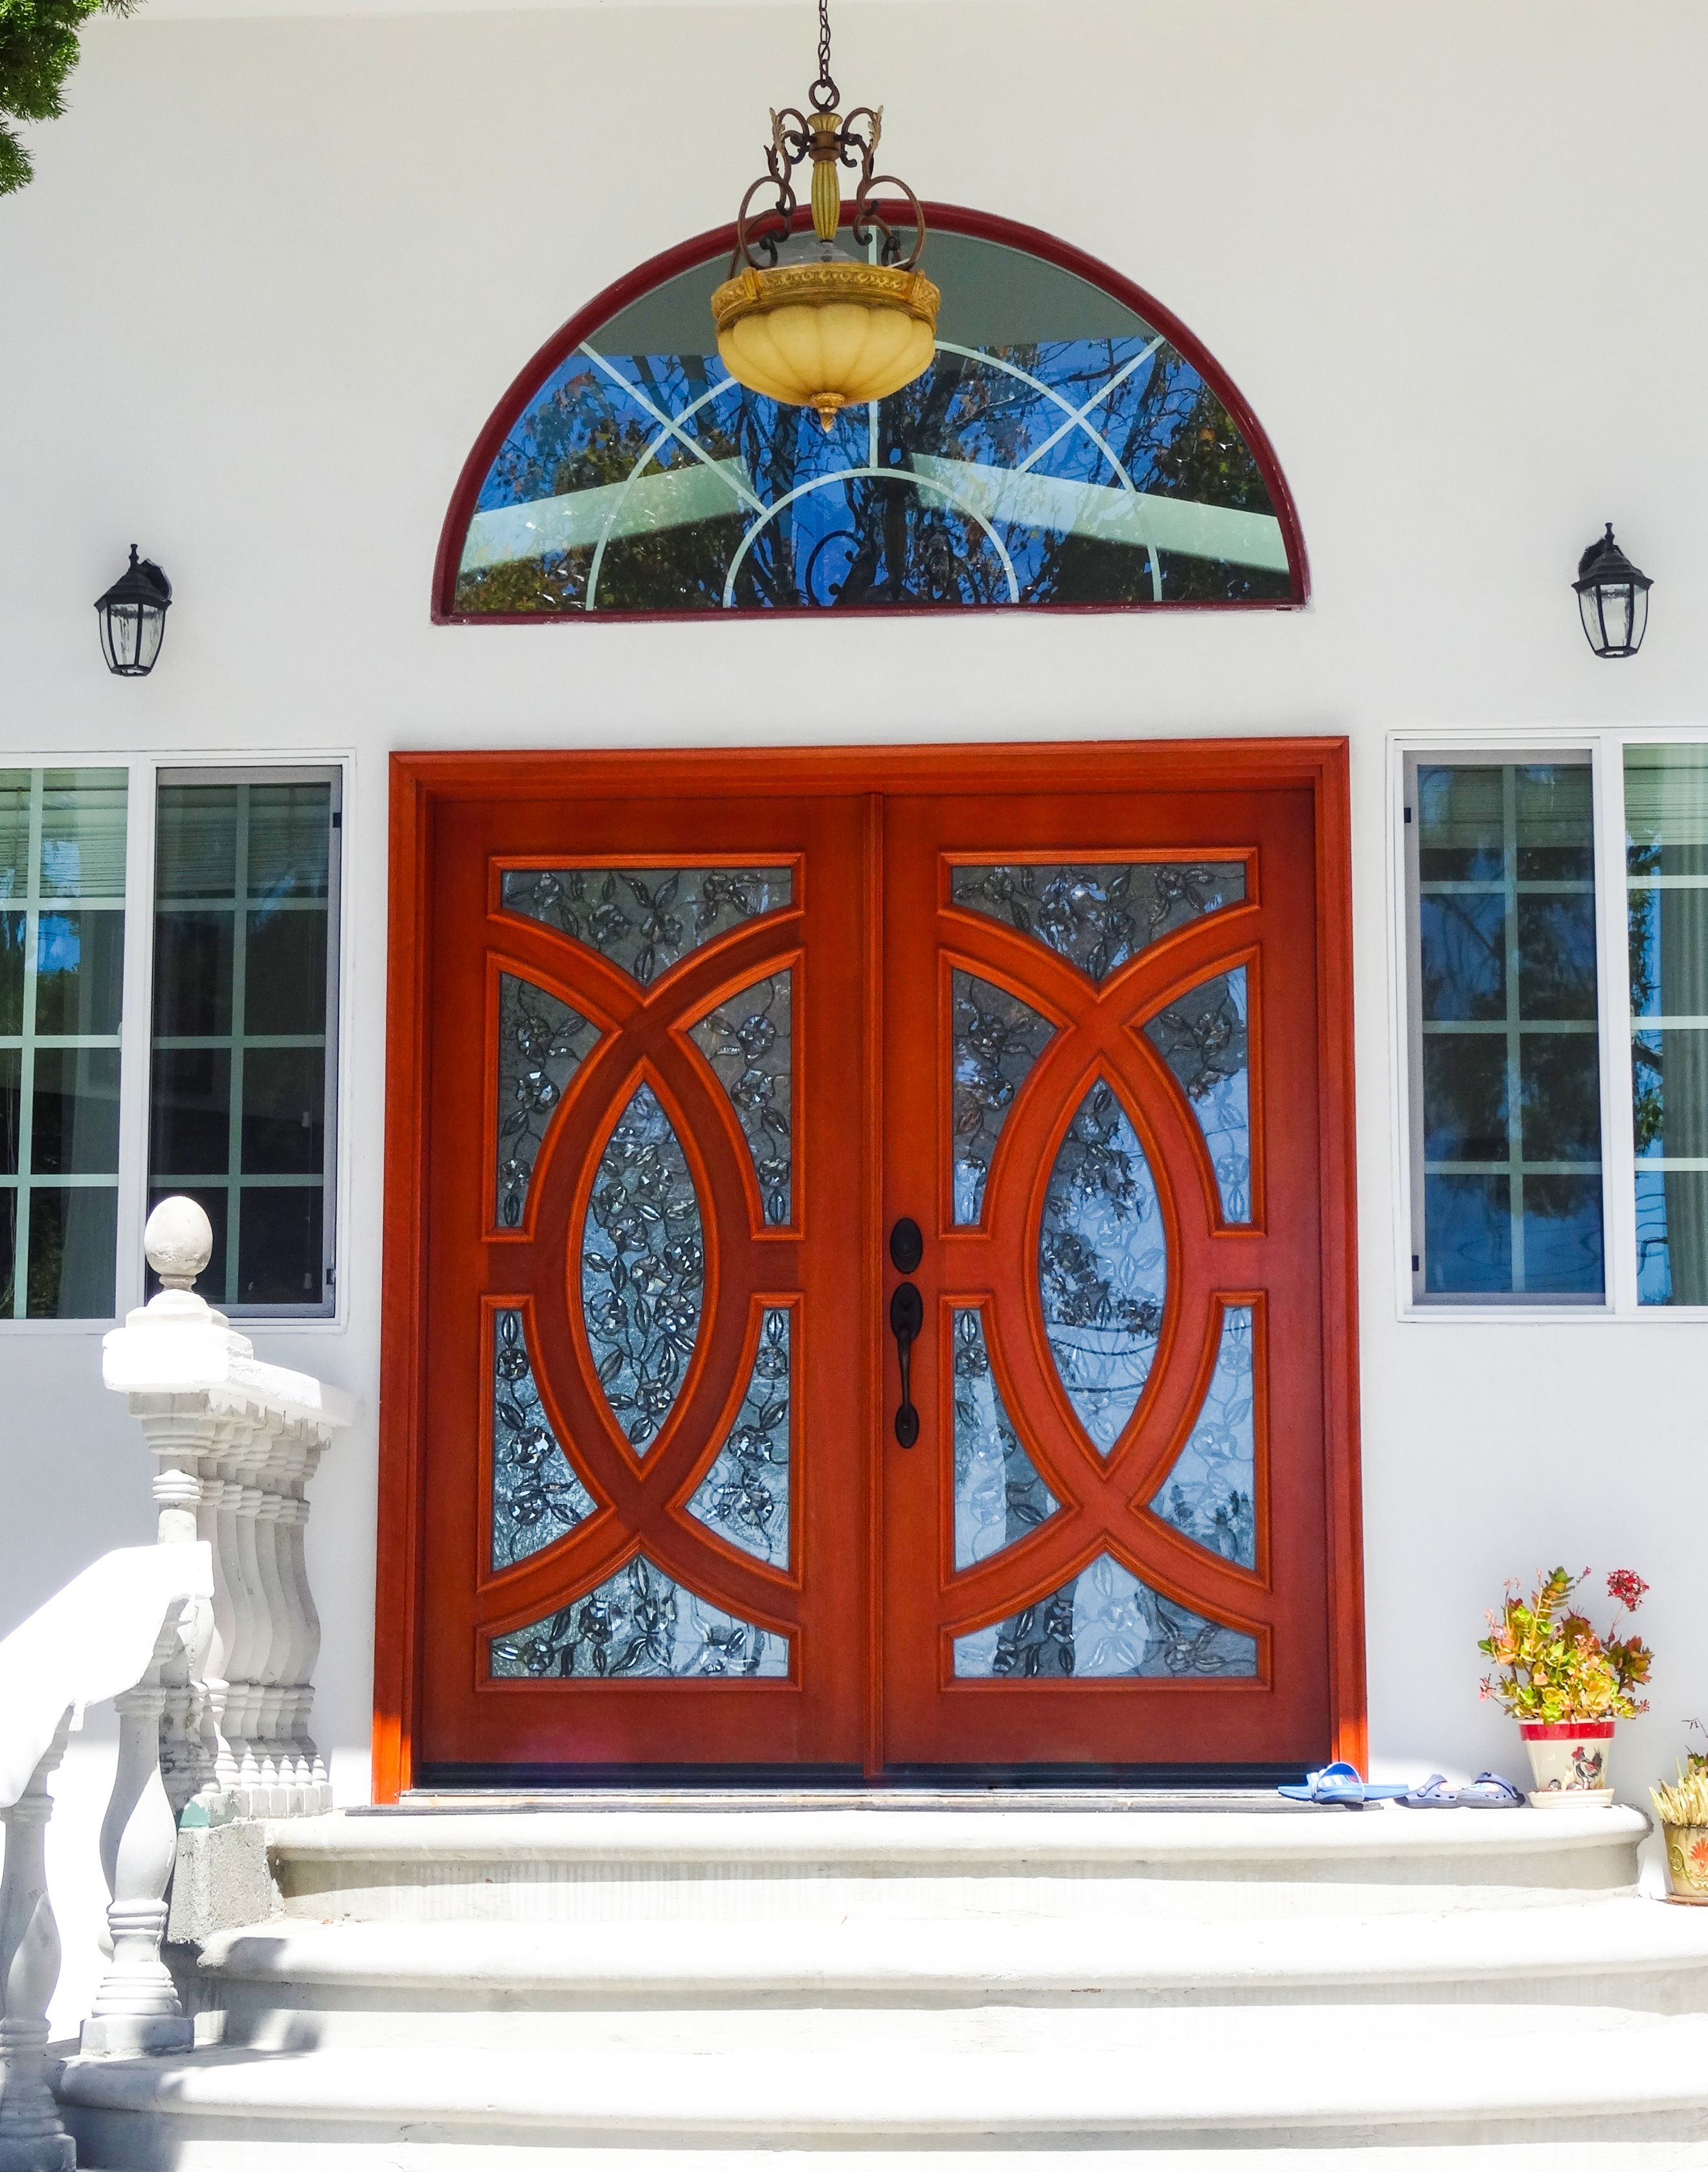 How to Protect the Glass Seal on your Transom | Custom Luxury Wooden Door Designs by & How to Protect the Glass Seal on your Transom | Custom Luxury Wooden ...